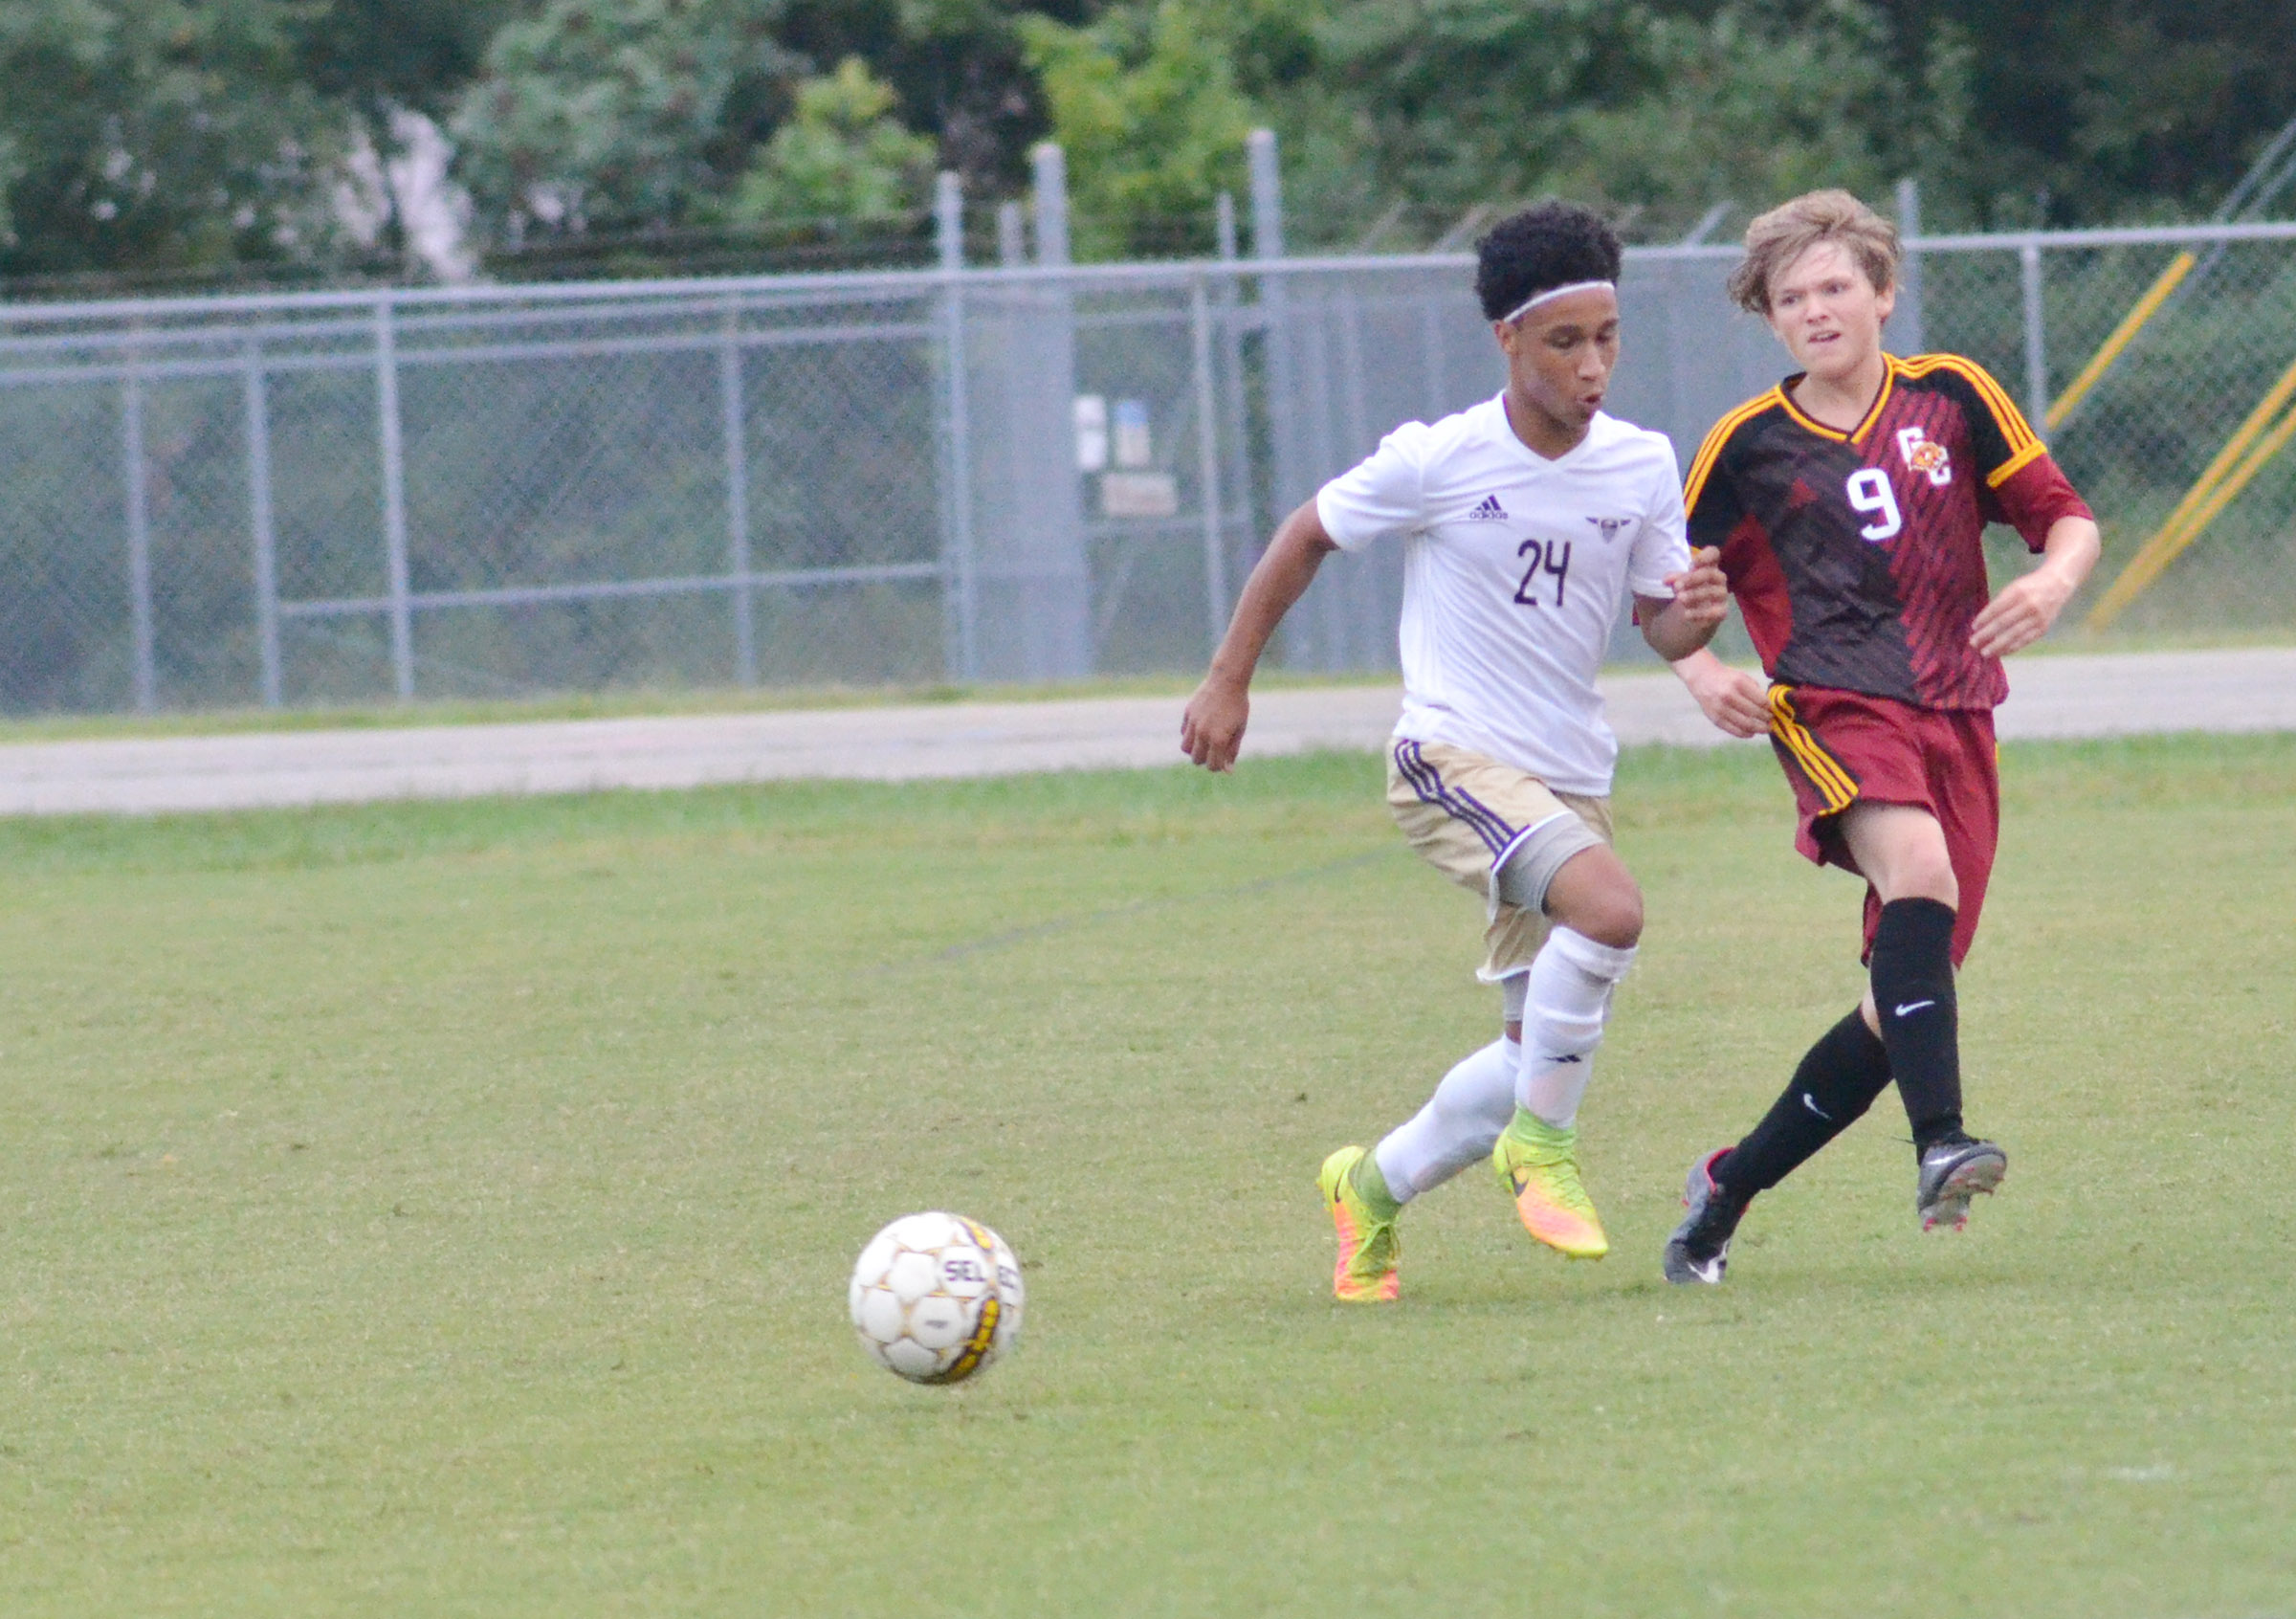 CHS junior Daniel Johnson fights for control of the ball.